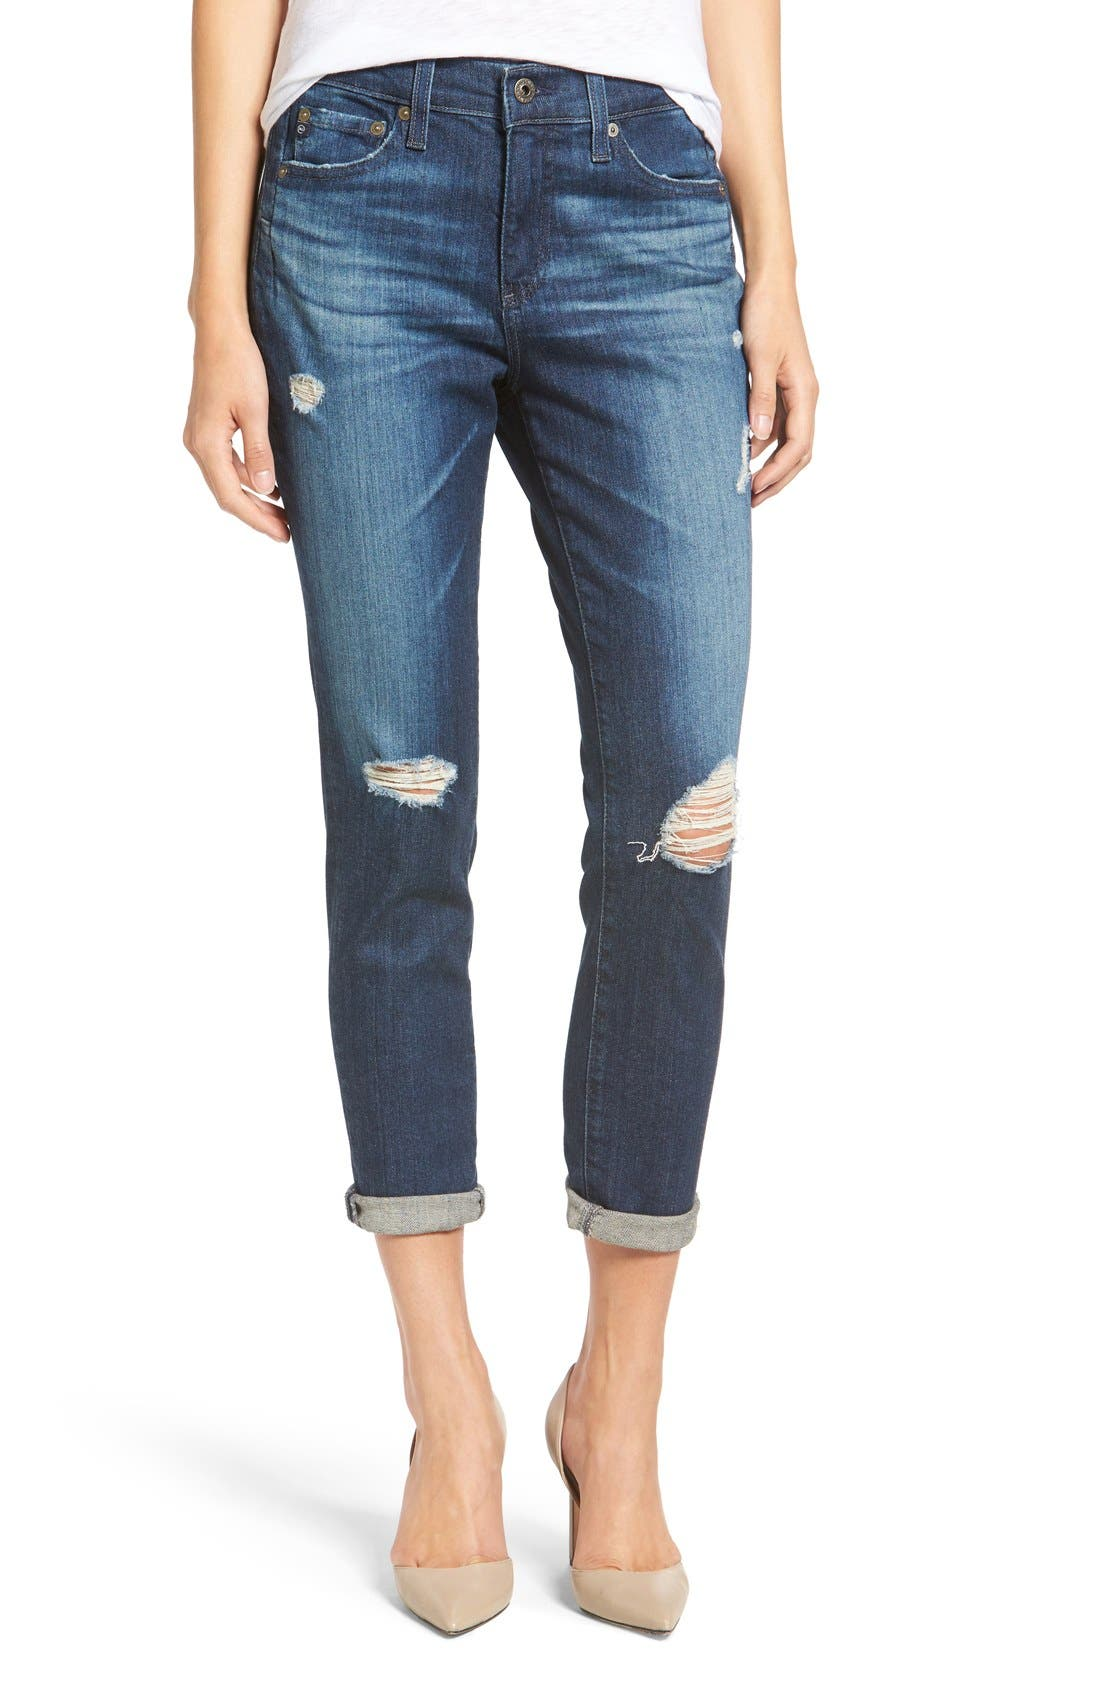 Main Image - AG 'The Beau' High Rise Slouchy Skinny Jeans (Winnow)